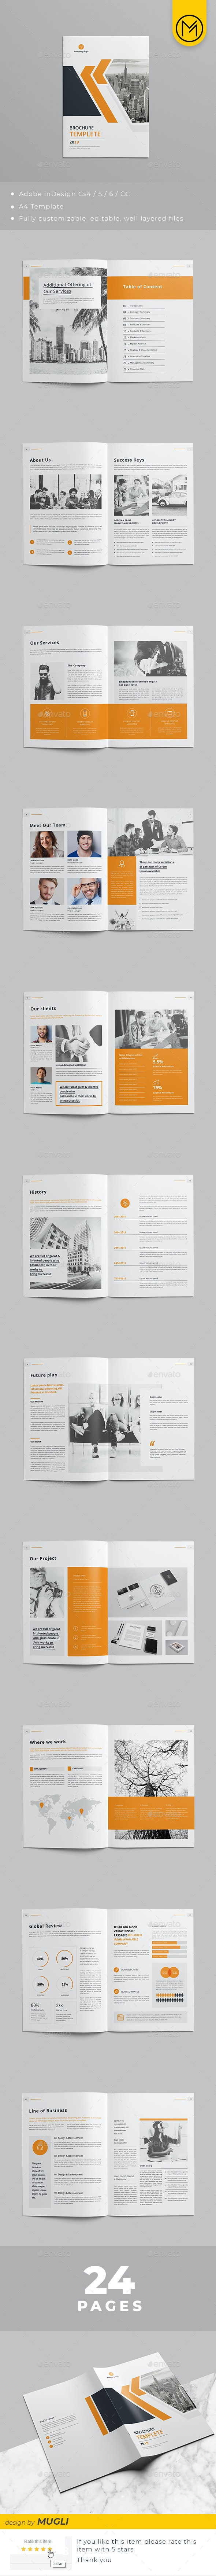 Corporate Brochure Design 2019 - Corporate Brochures